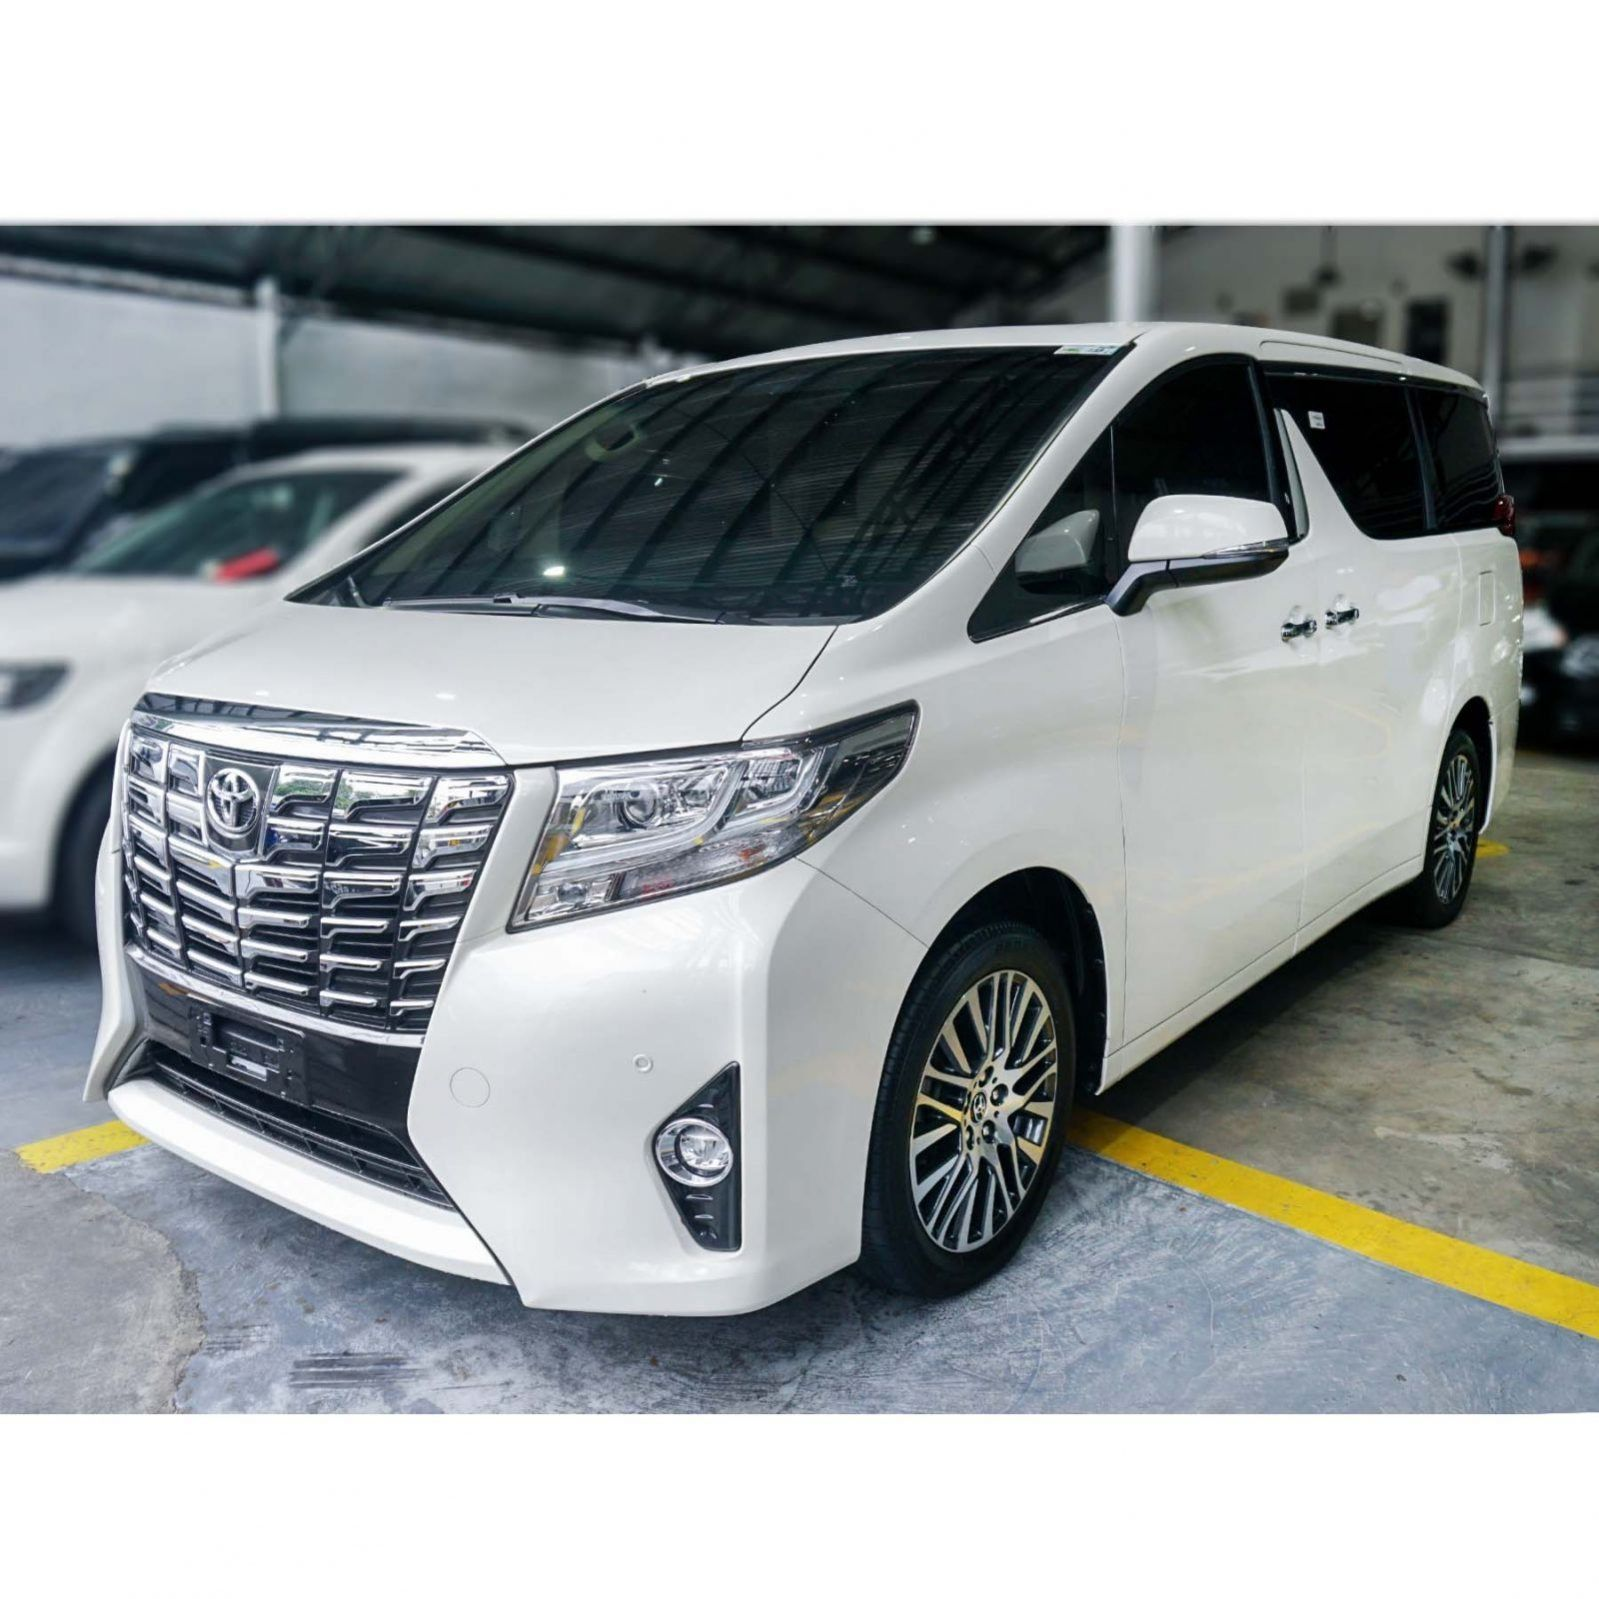 2018 Toyota Alphard First owner Automatic Transmission 3